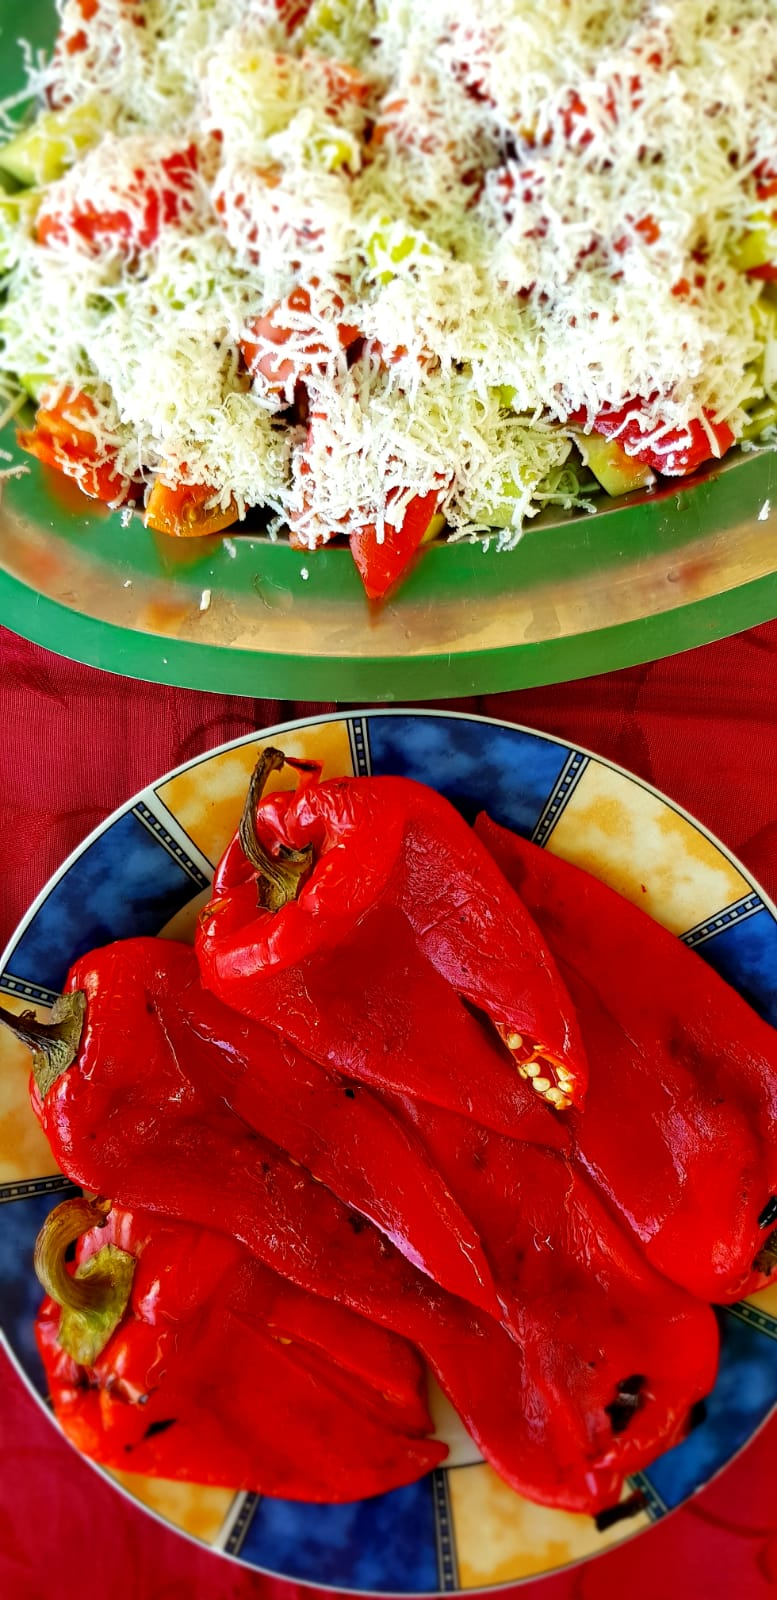 Ajva r is made from roasted red bell peppers (capsicum), garlic and sunflower oil and is delicious served on EVERYTHING.